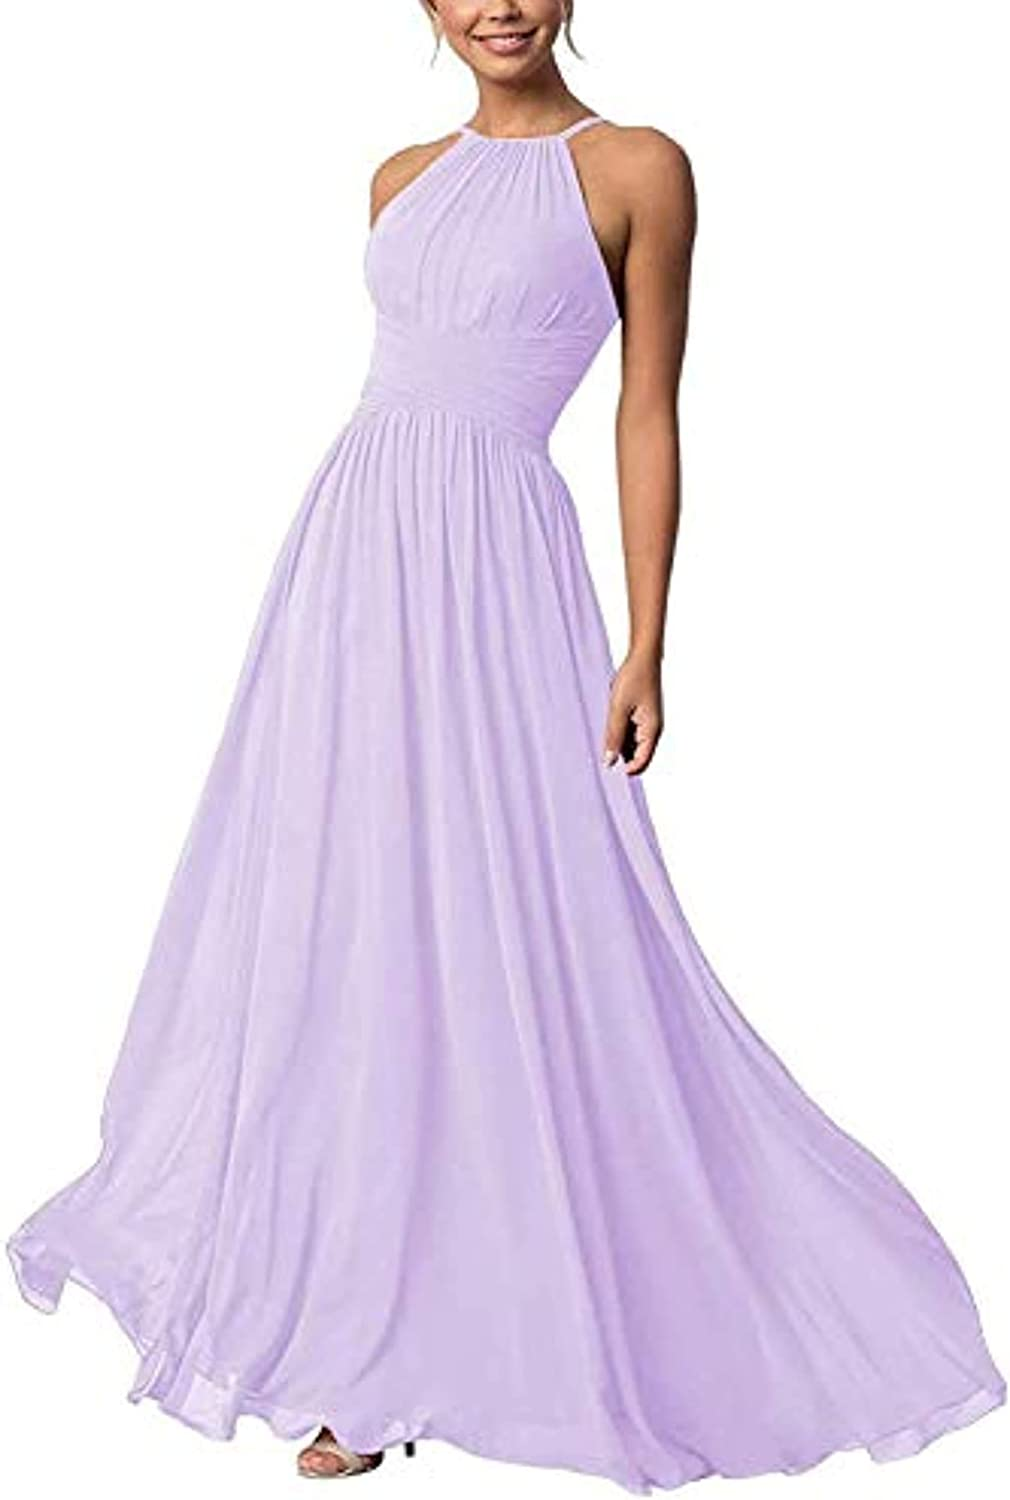 NOVIA Bridesmaid Dresses for Wedding Long Chiffon Pleated Formal Evening Gowns for Women